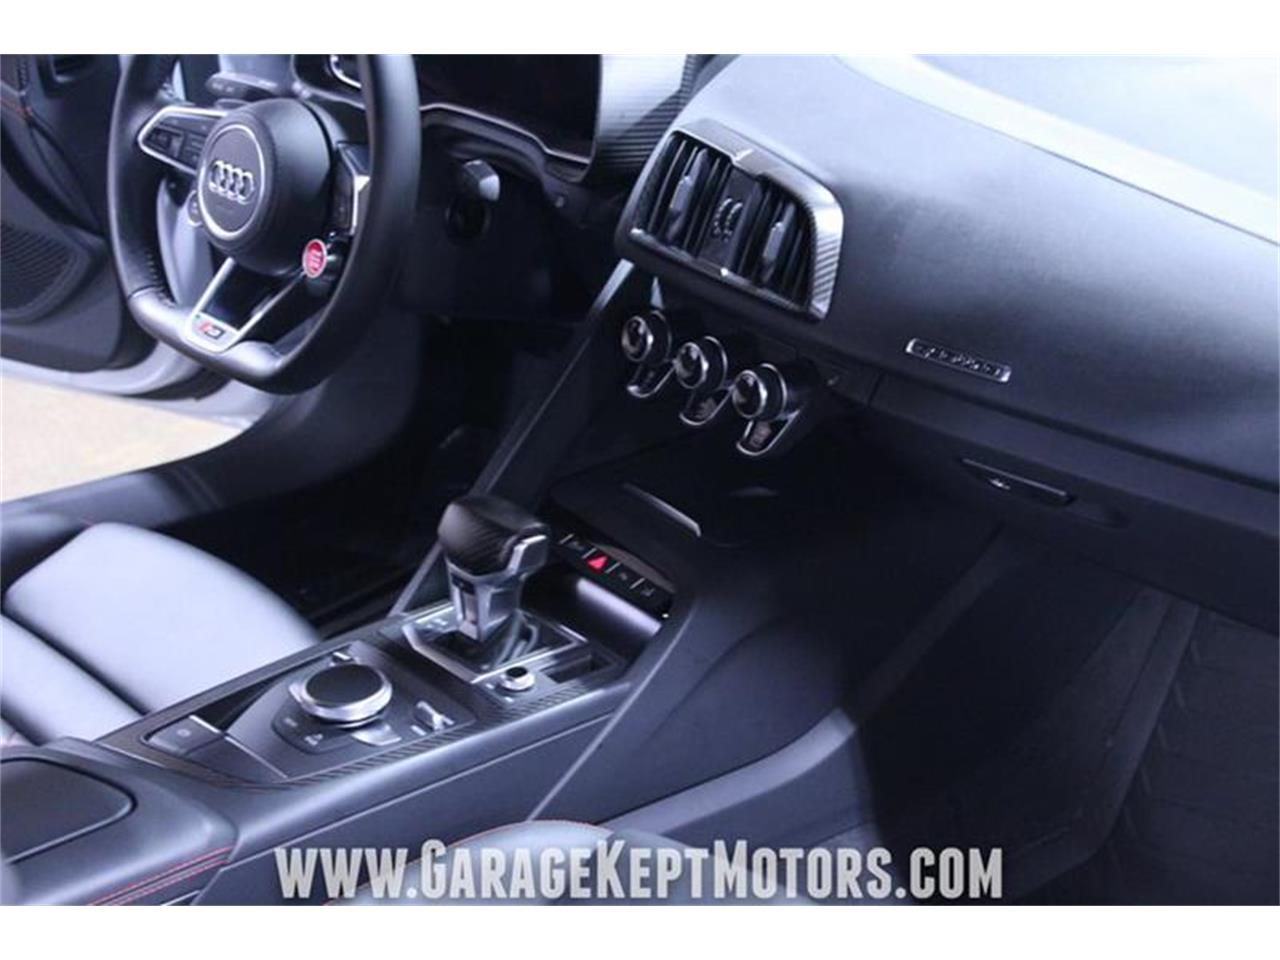 Large Picture of 2017 Audi R8 located in Grand Rapids Michigan - $149,900.00 - QBYC